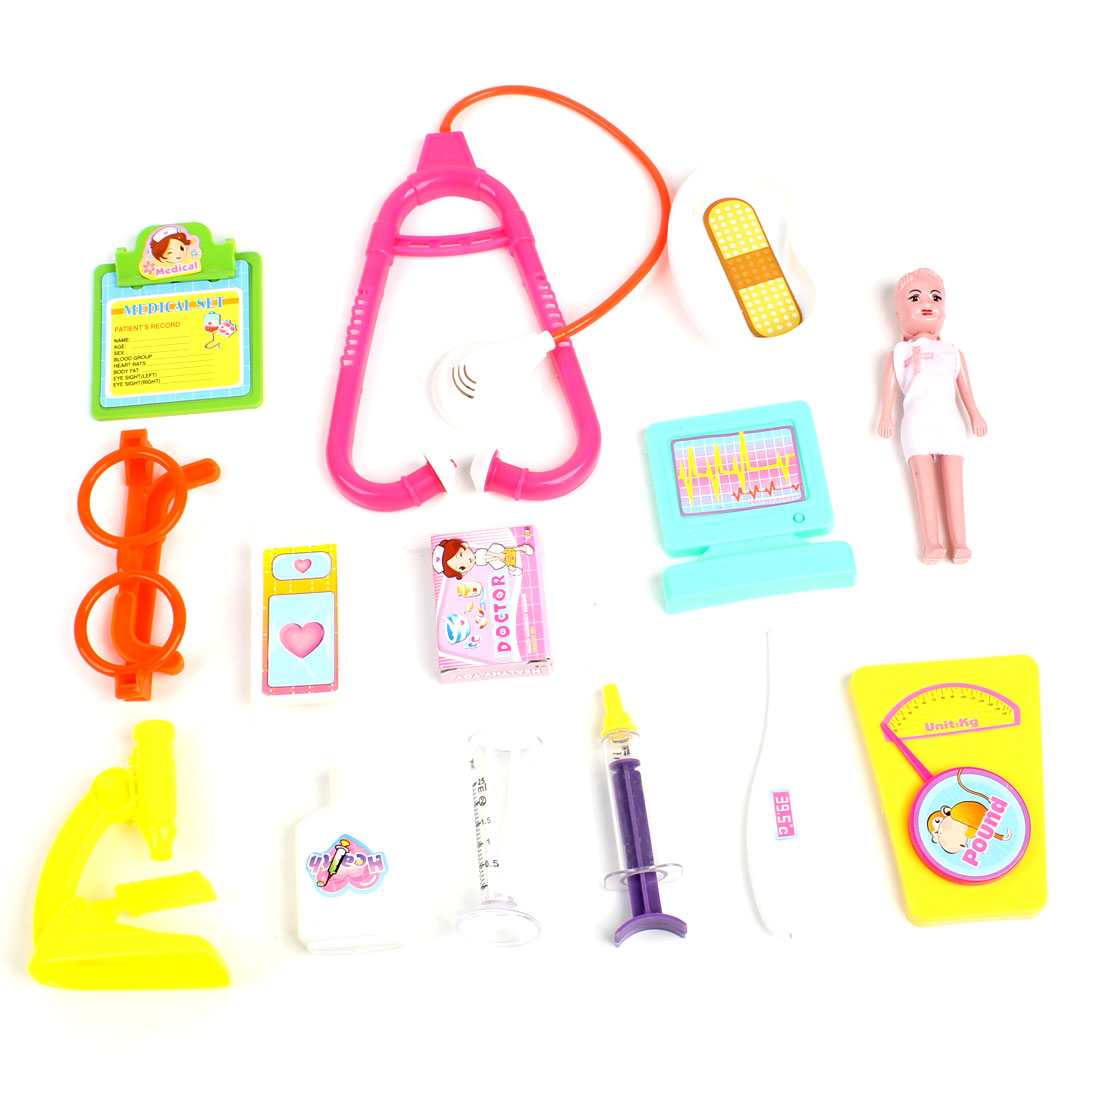 Plastic Doctor Tools Set 14 in 1 Green Pink Yellow Toy for Children Kids